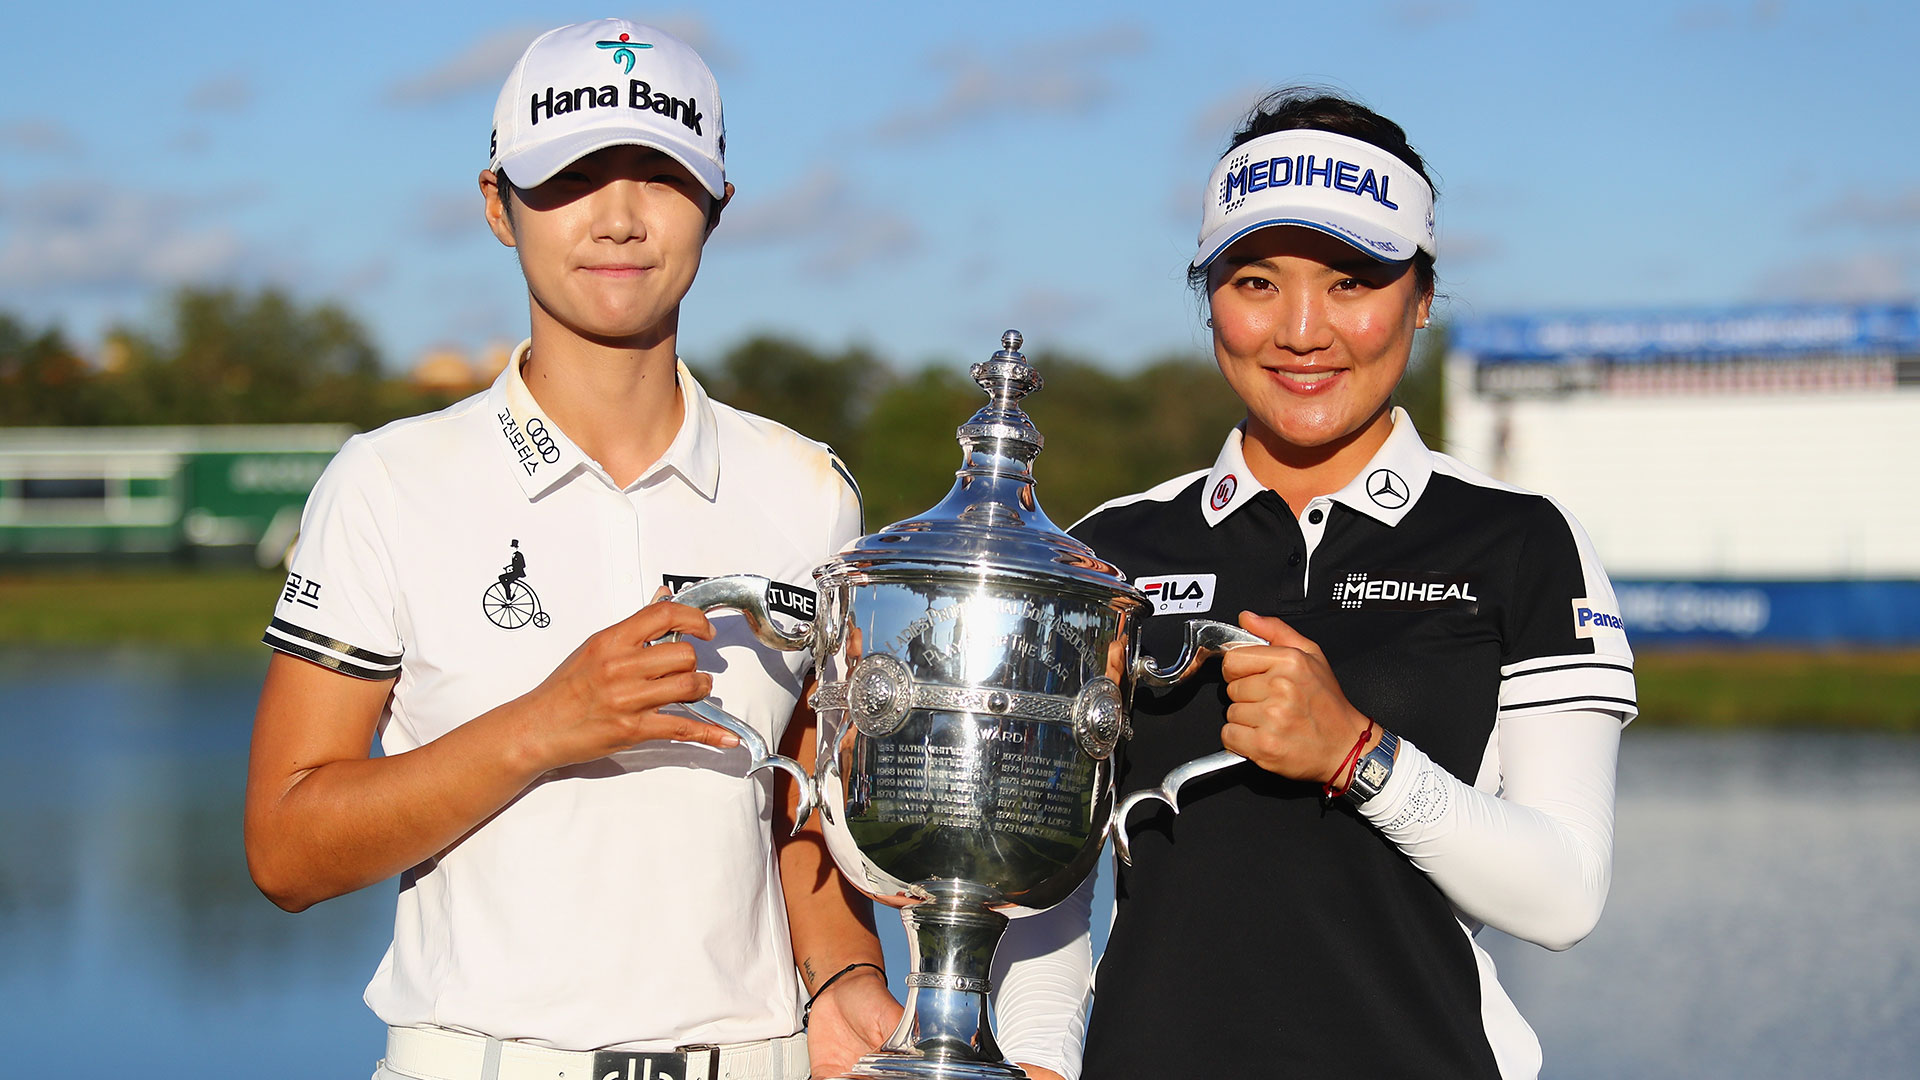 Sung Hyun Park and So Yeon Ryu at the 2017 CME Group Tour Championship